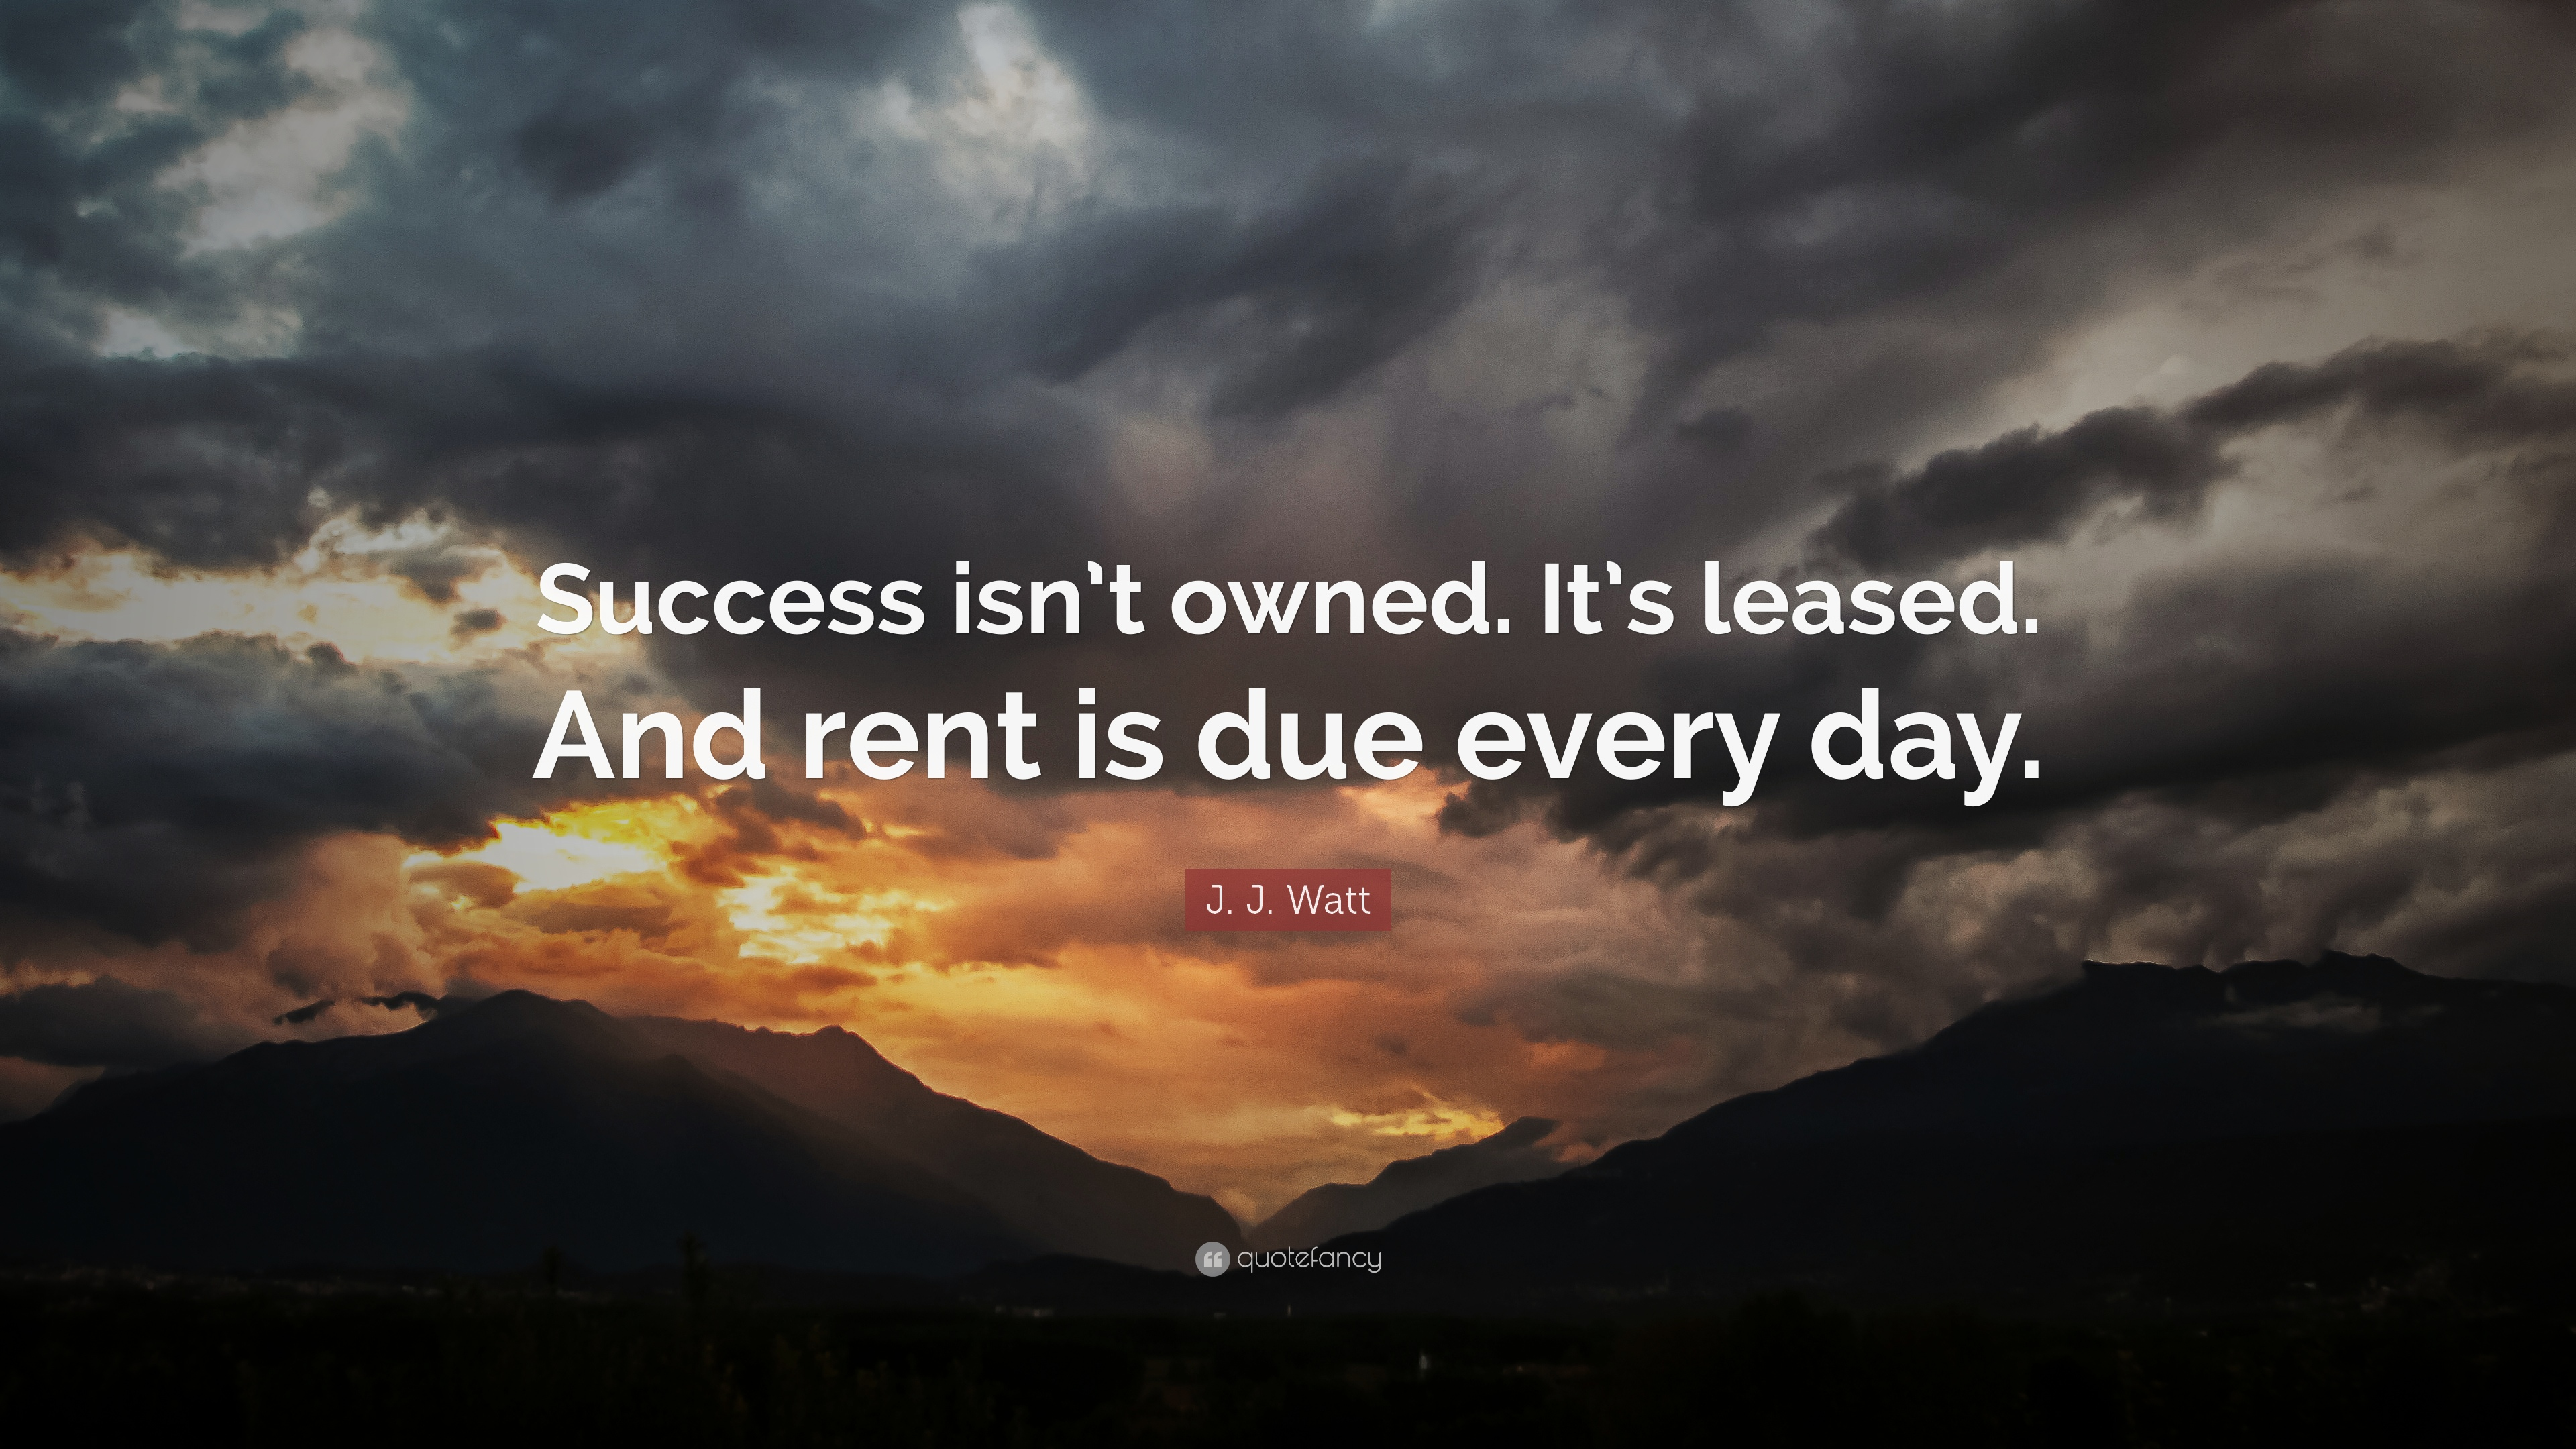 j j watt quote success isn t owned it s leased and